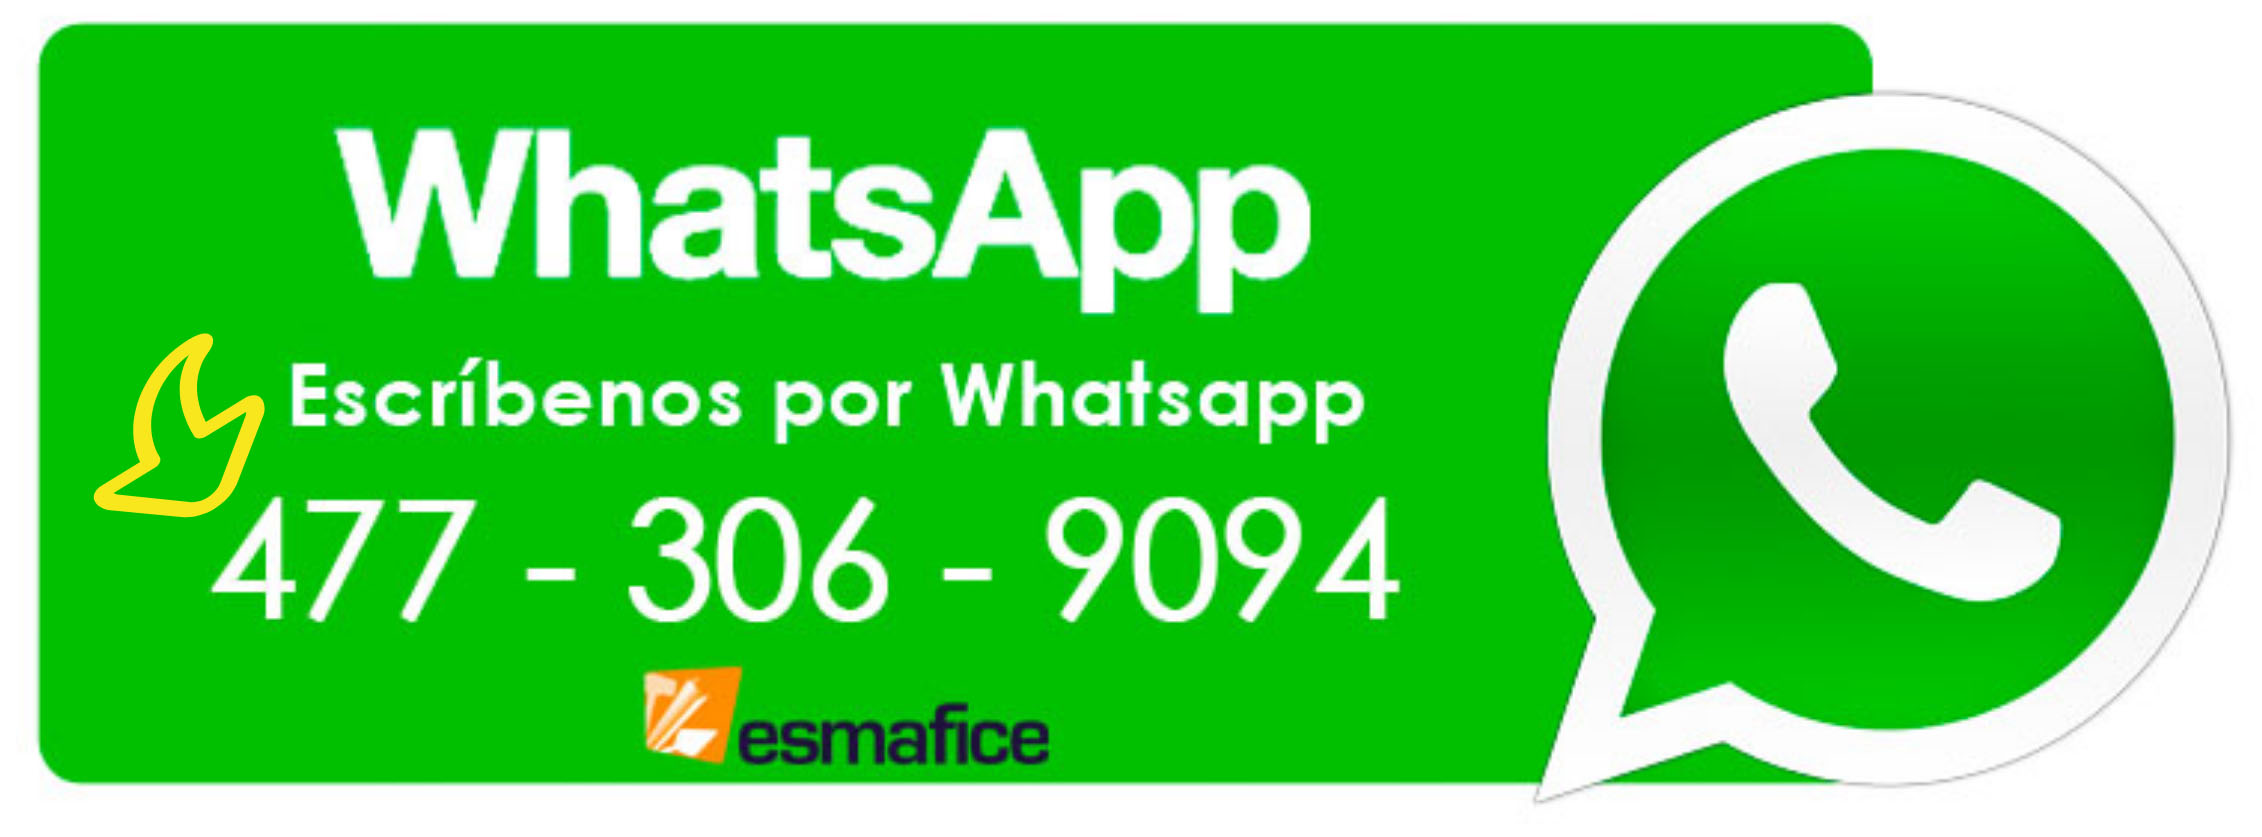 whatsapp esmafice